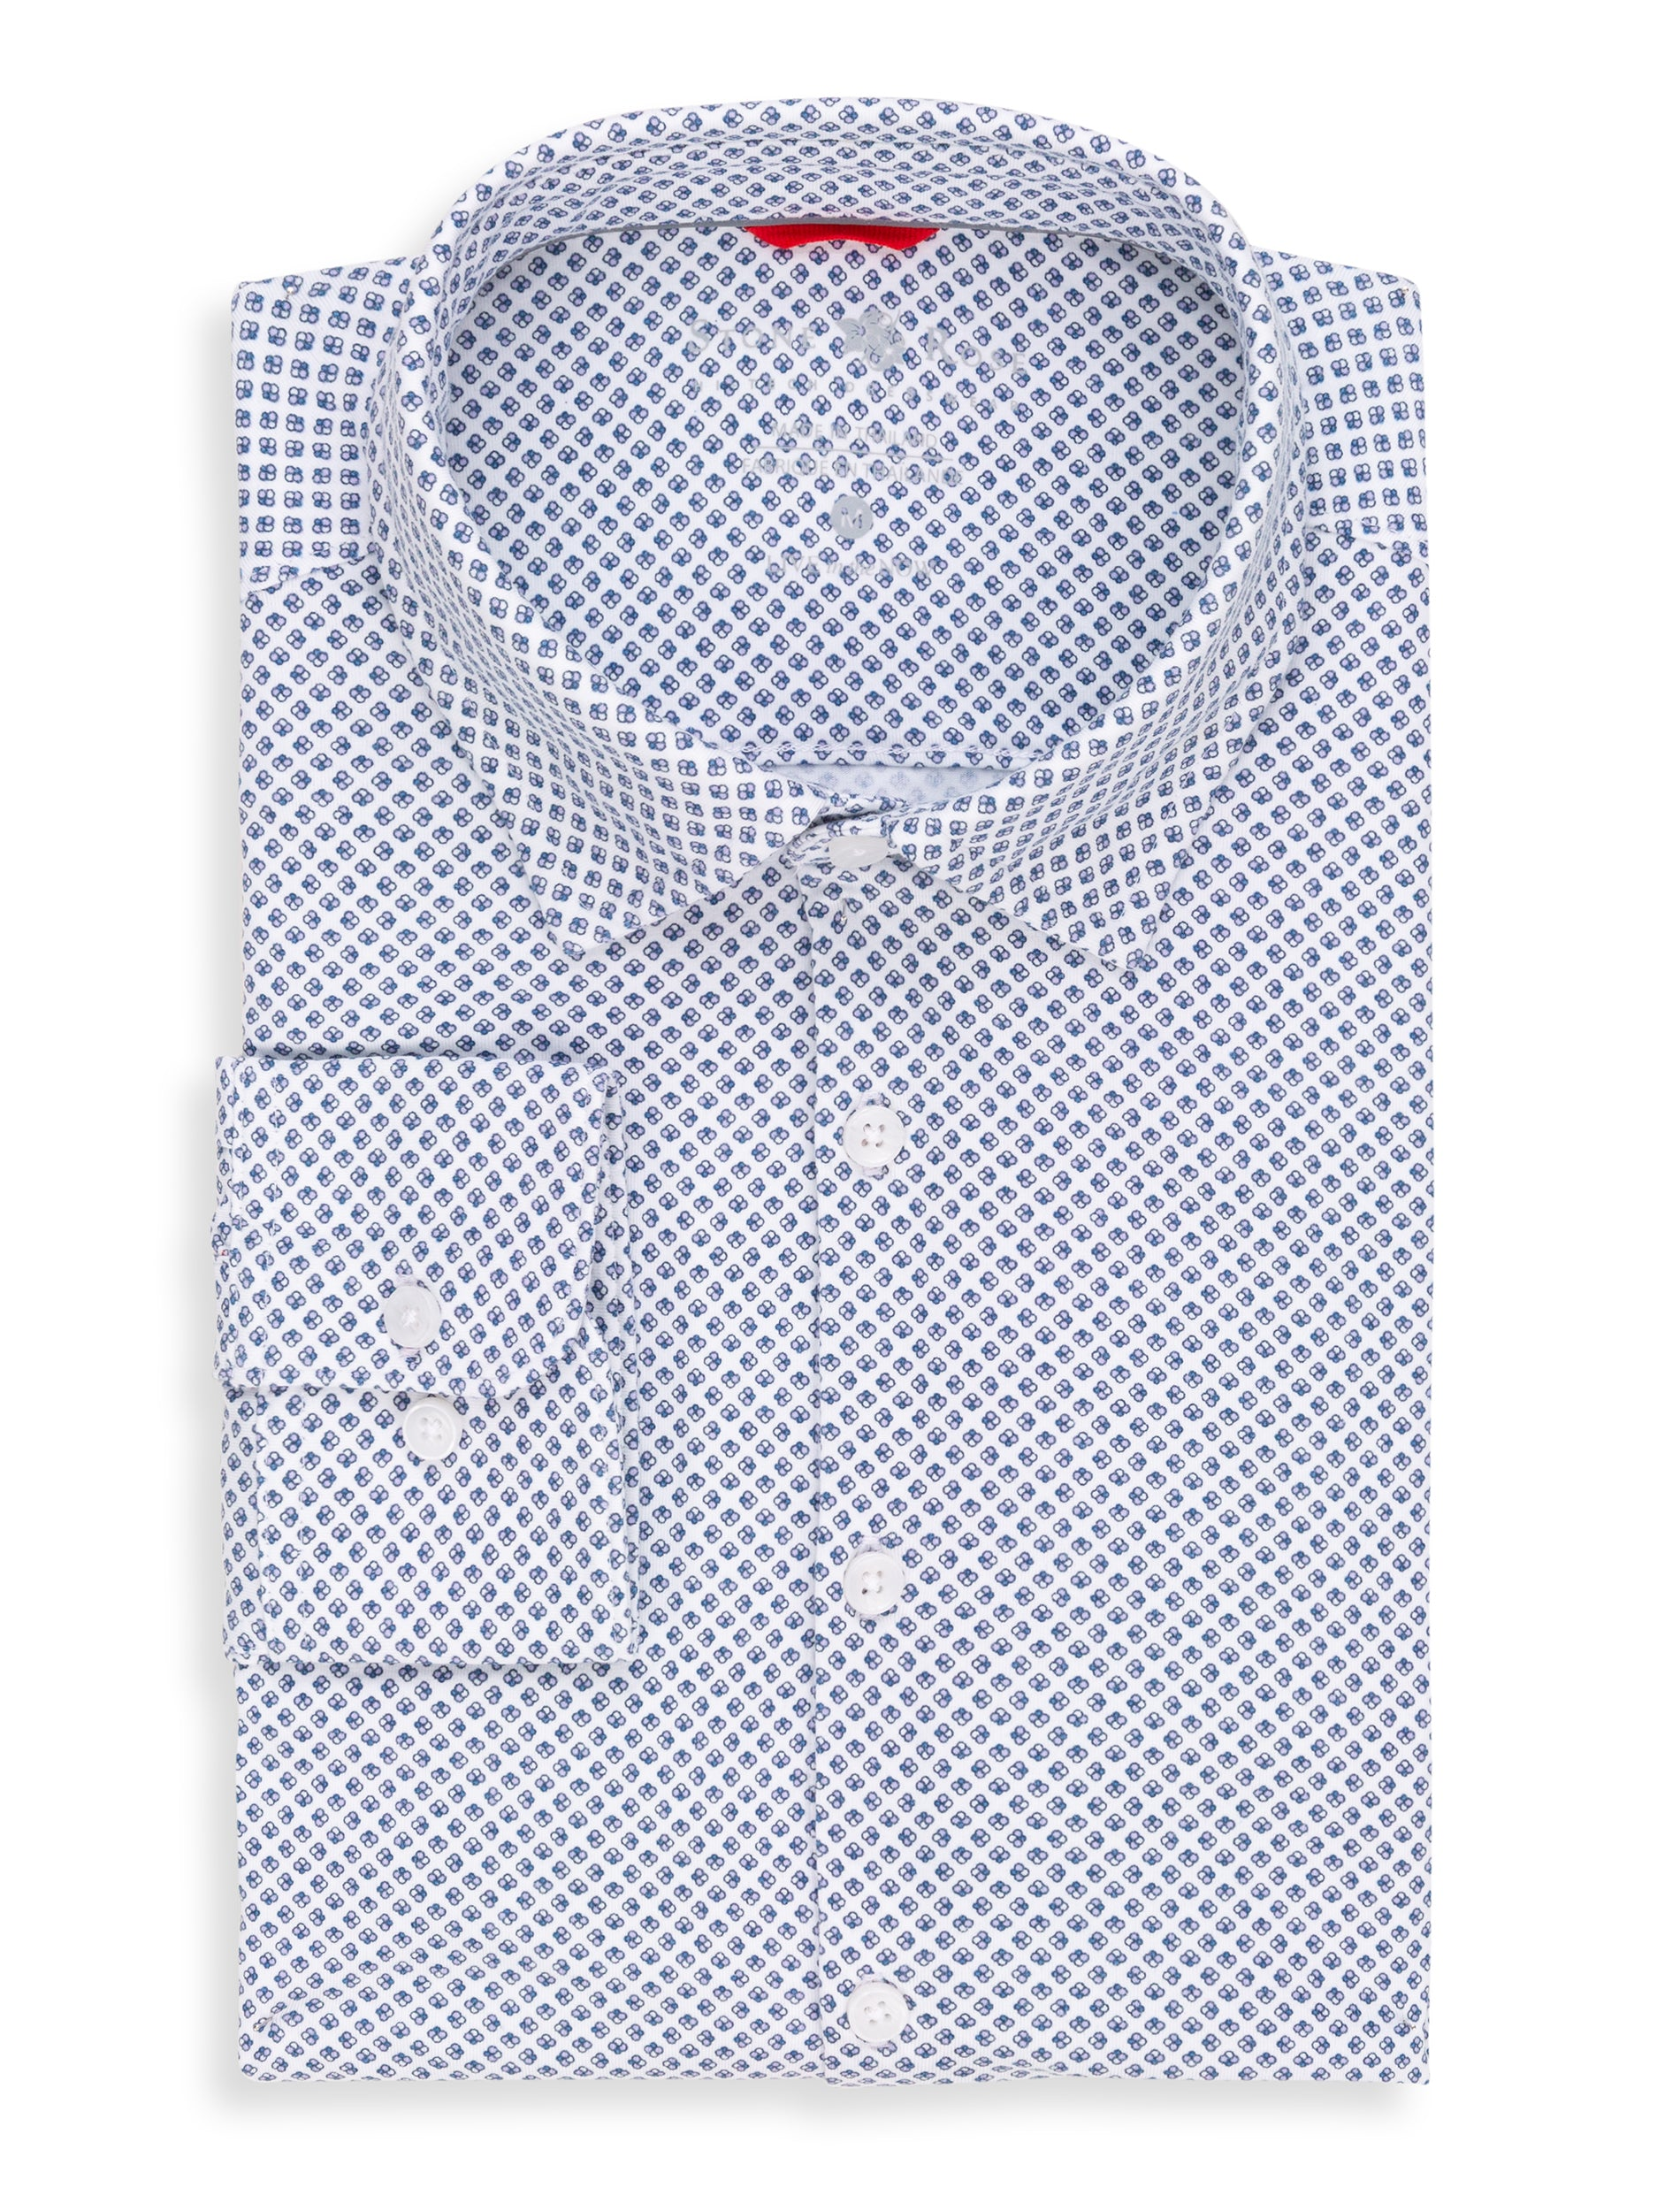 Lavender Geometric Performance Knit Long Sleeve Shirt